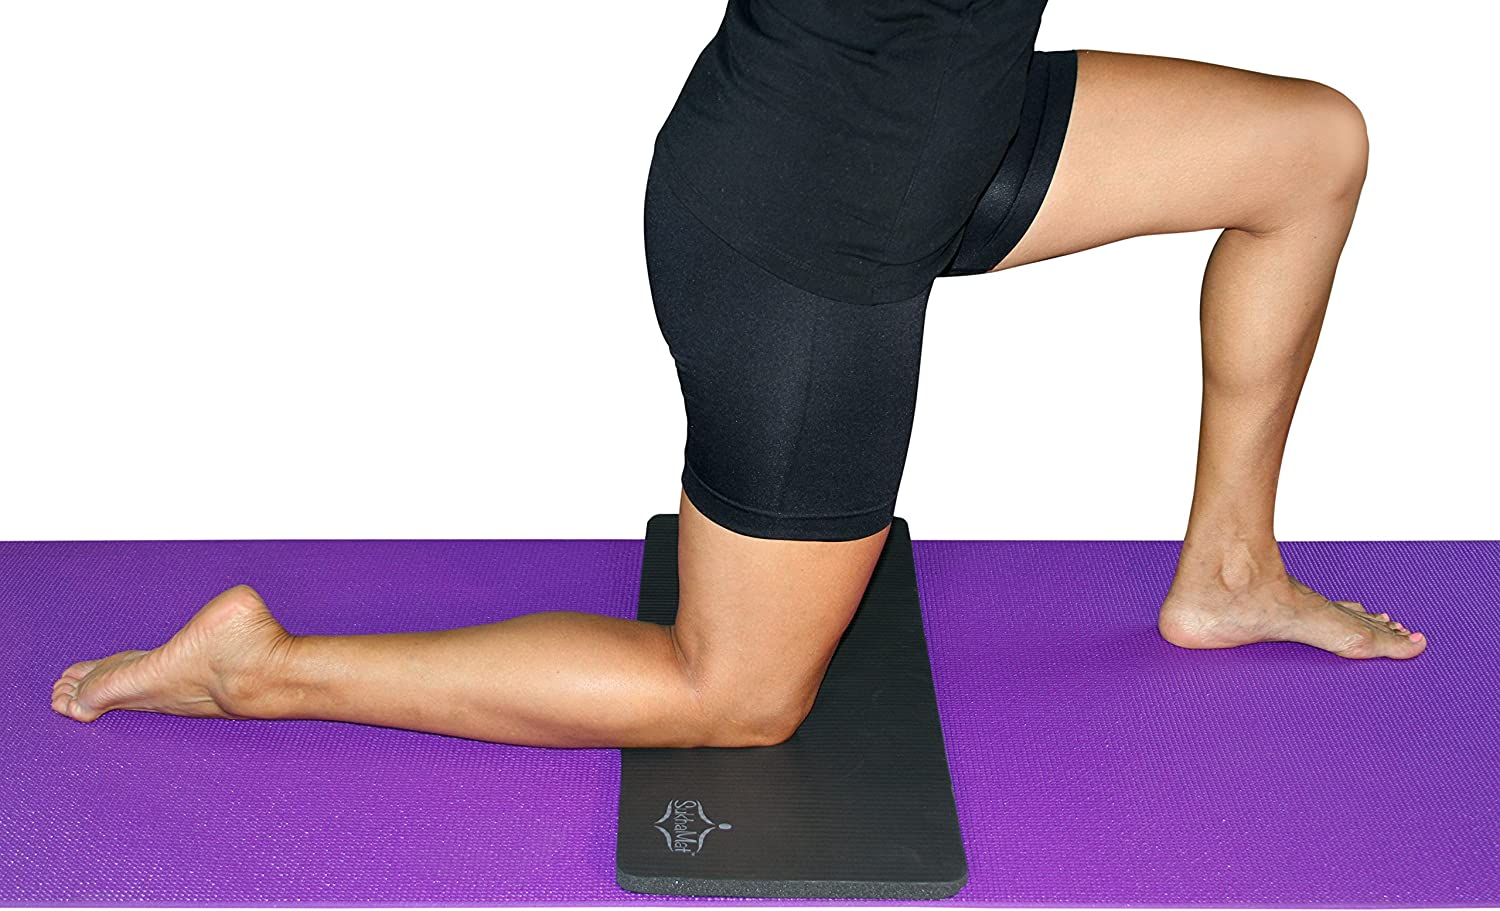 """SukhaMat Yoga Mat with Knee Pad Starter Set One Full Size 72/"""" Long Yoga Mat and One 15mm Thick Yoga Knee Pad Cushion Alleviates Knee Pain"""